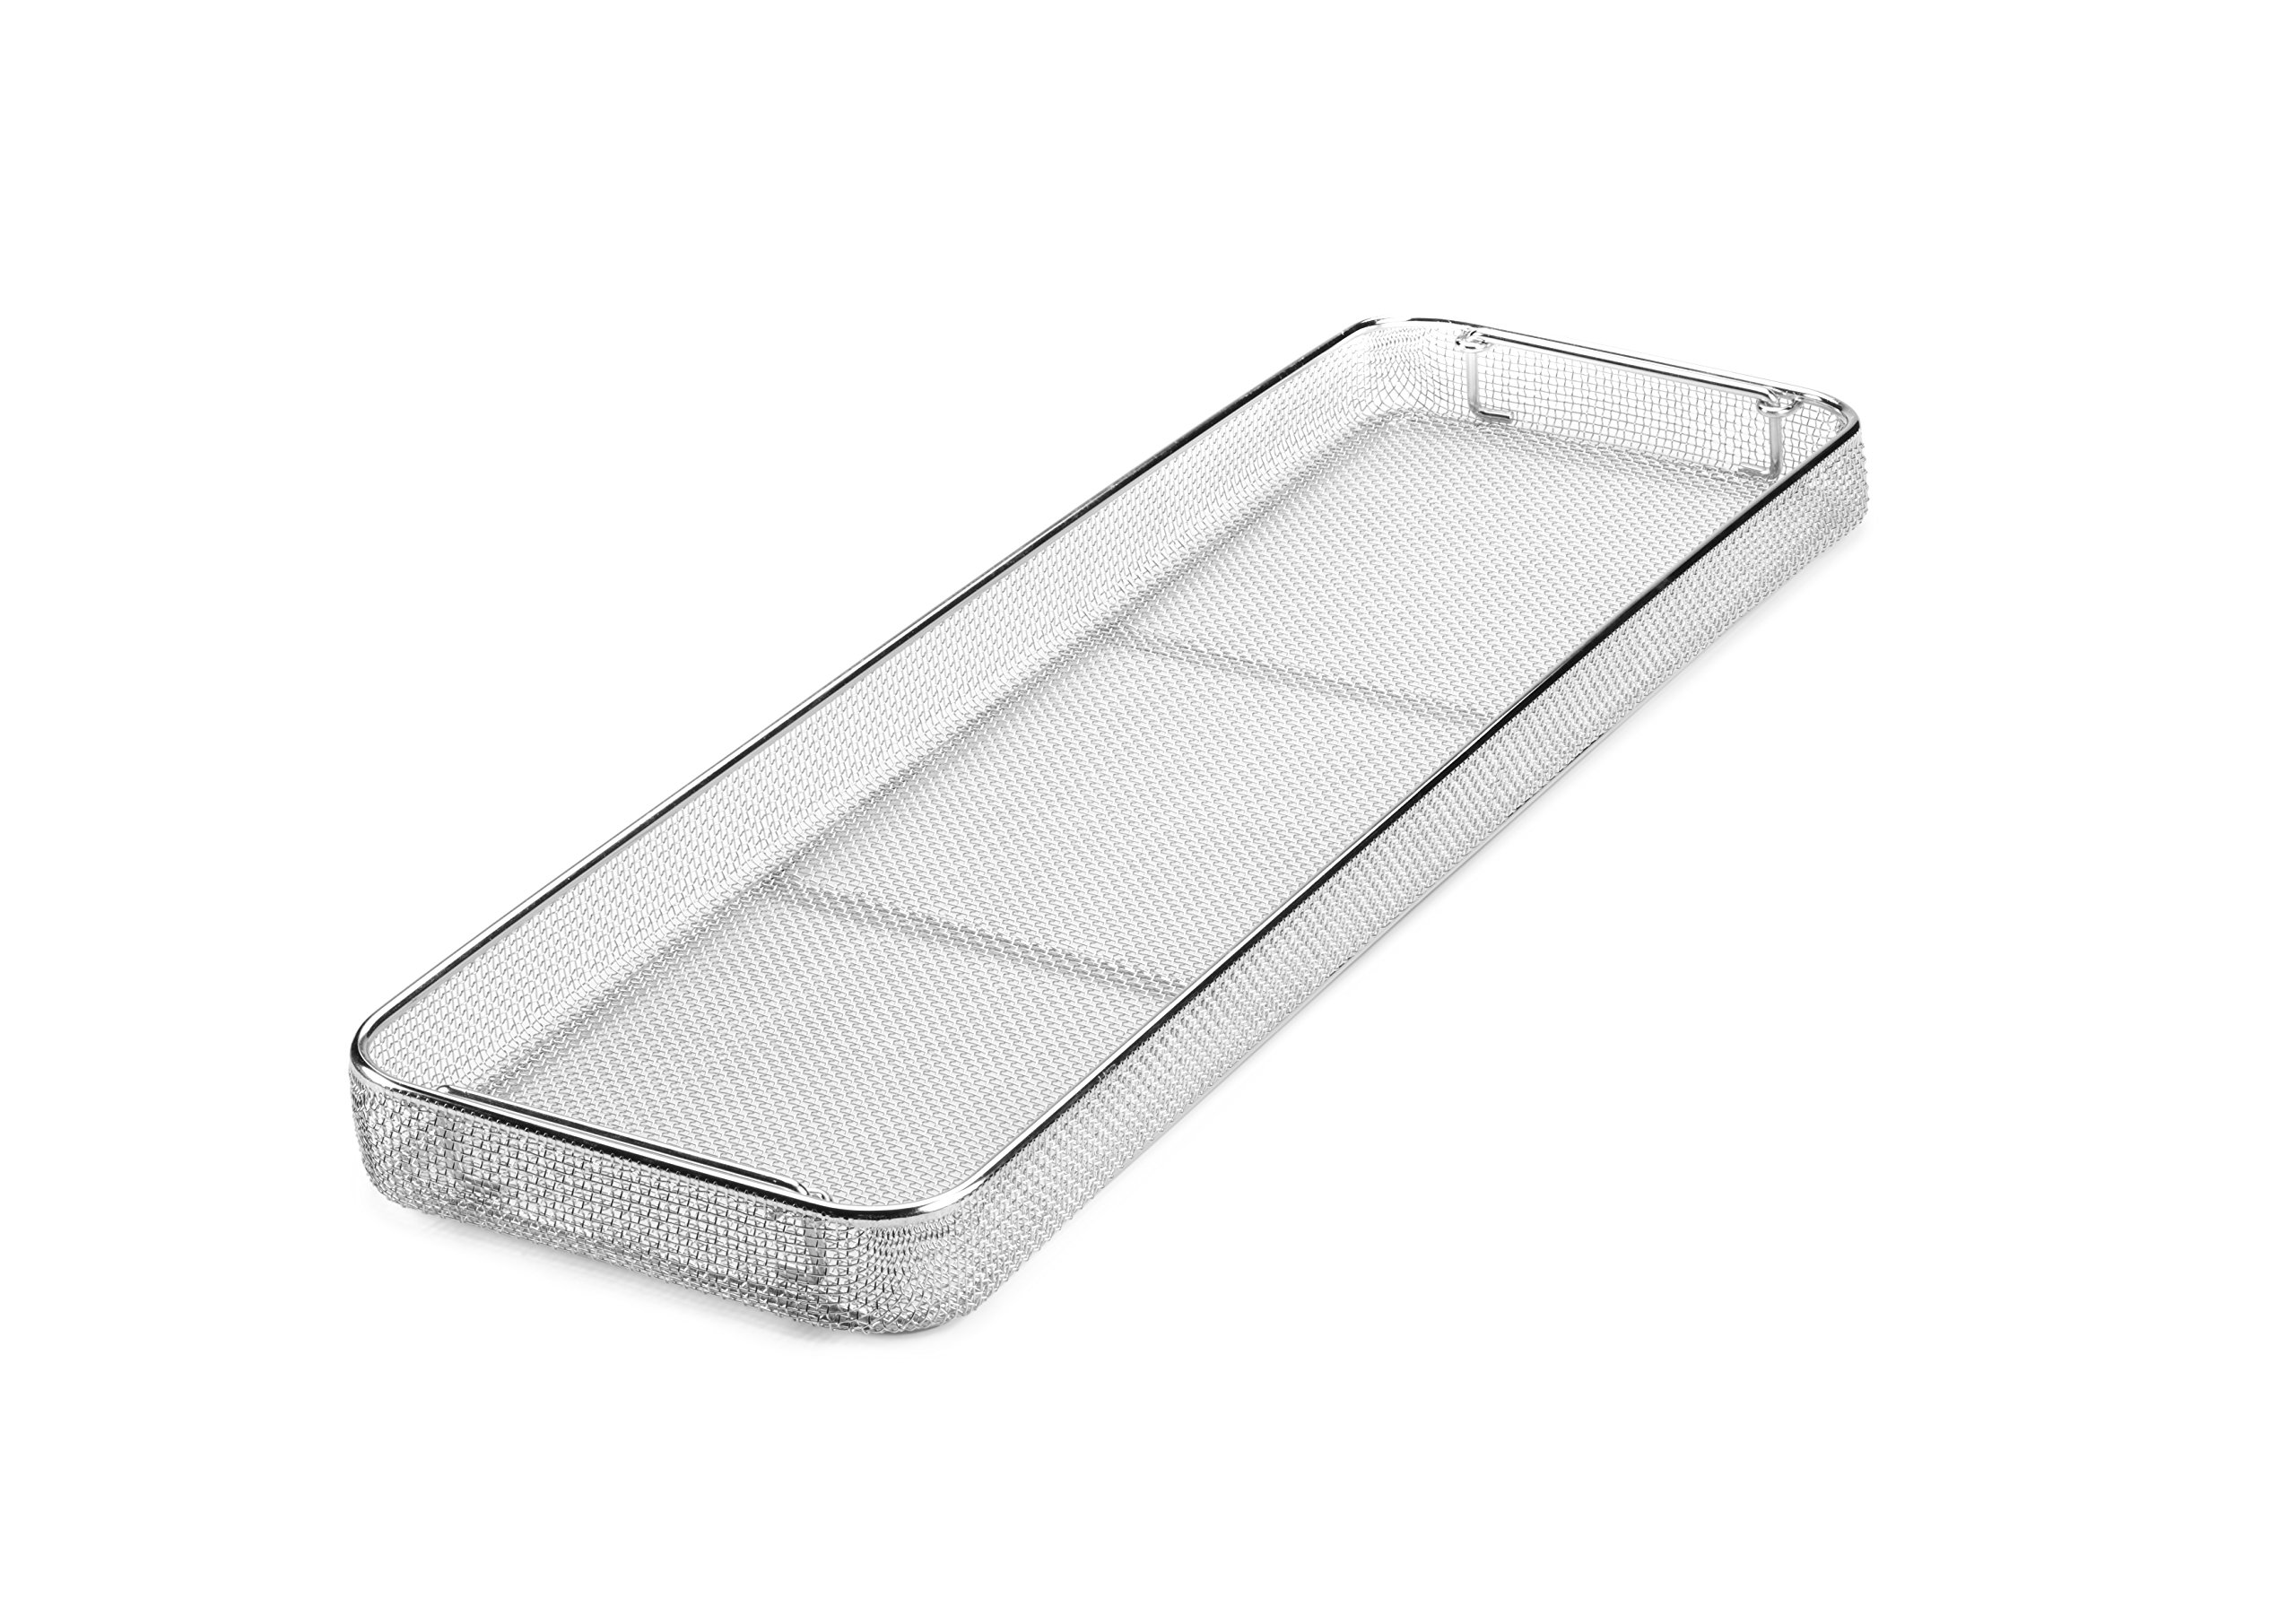 Key Surgical MT-9521 Micro Mesh Tray with Drop Handles 700mm x 210mm x 50mm